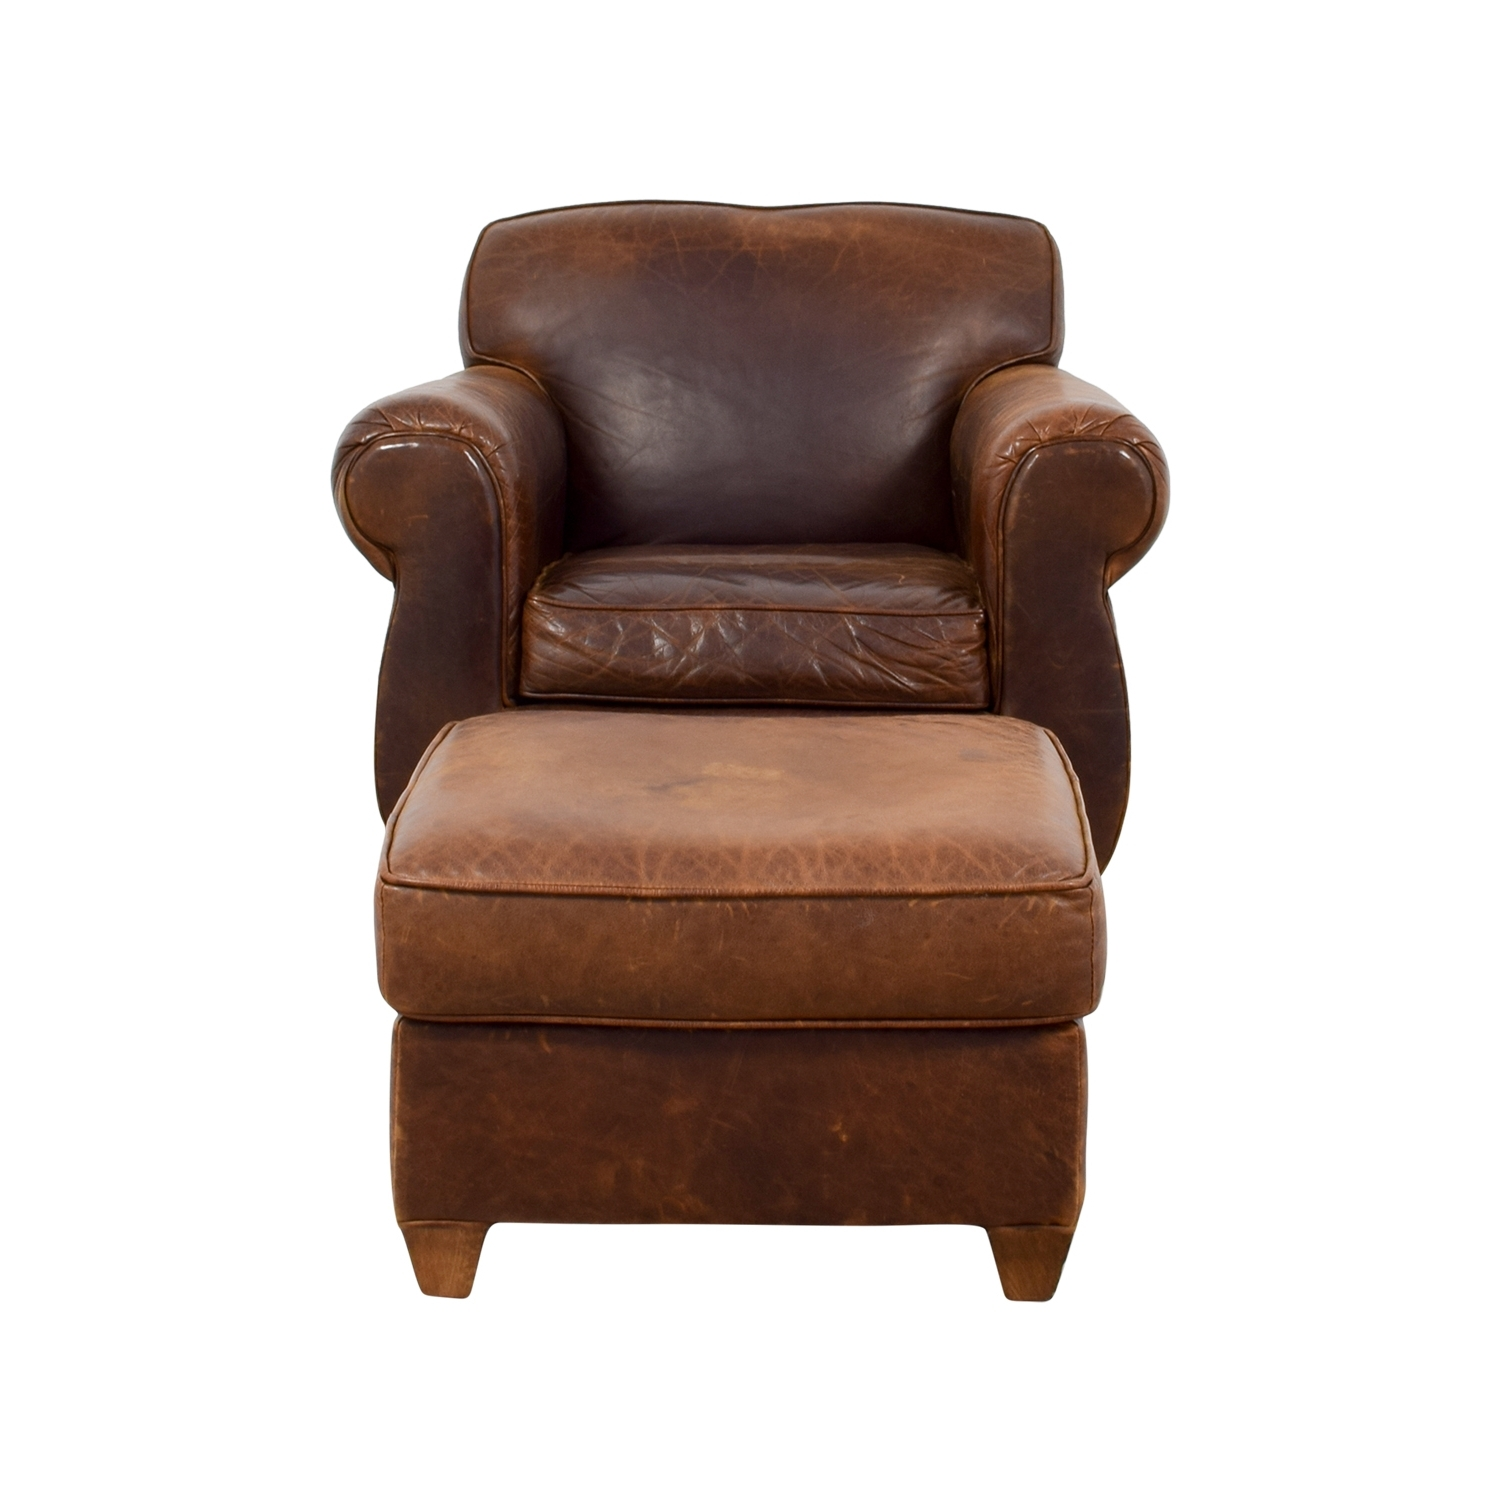 [%64% Off – Restoration Hardware Restoration Hardware 1940s Inside Trendy Chairs With Ottoman|chairs With Ottoman Inside 2018 64% Off – Restoration Hardware Restoration Hardware 1940s|famous Chairs With Ottoman Within 64% Off – Restoration Hardware Restoration Hardware 1940s|newest 64% Off – Restoration Hardware Restoration Hardware 1940s For Chairs With Ottoman%] (View 11 of 20)